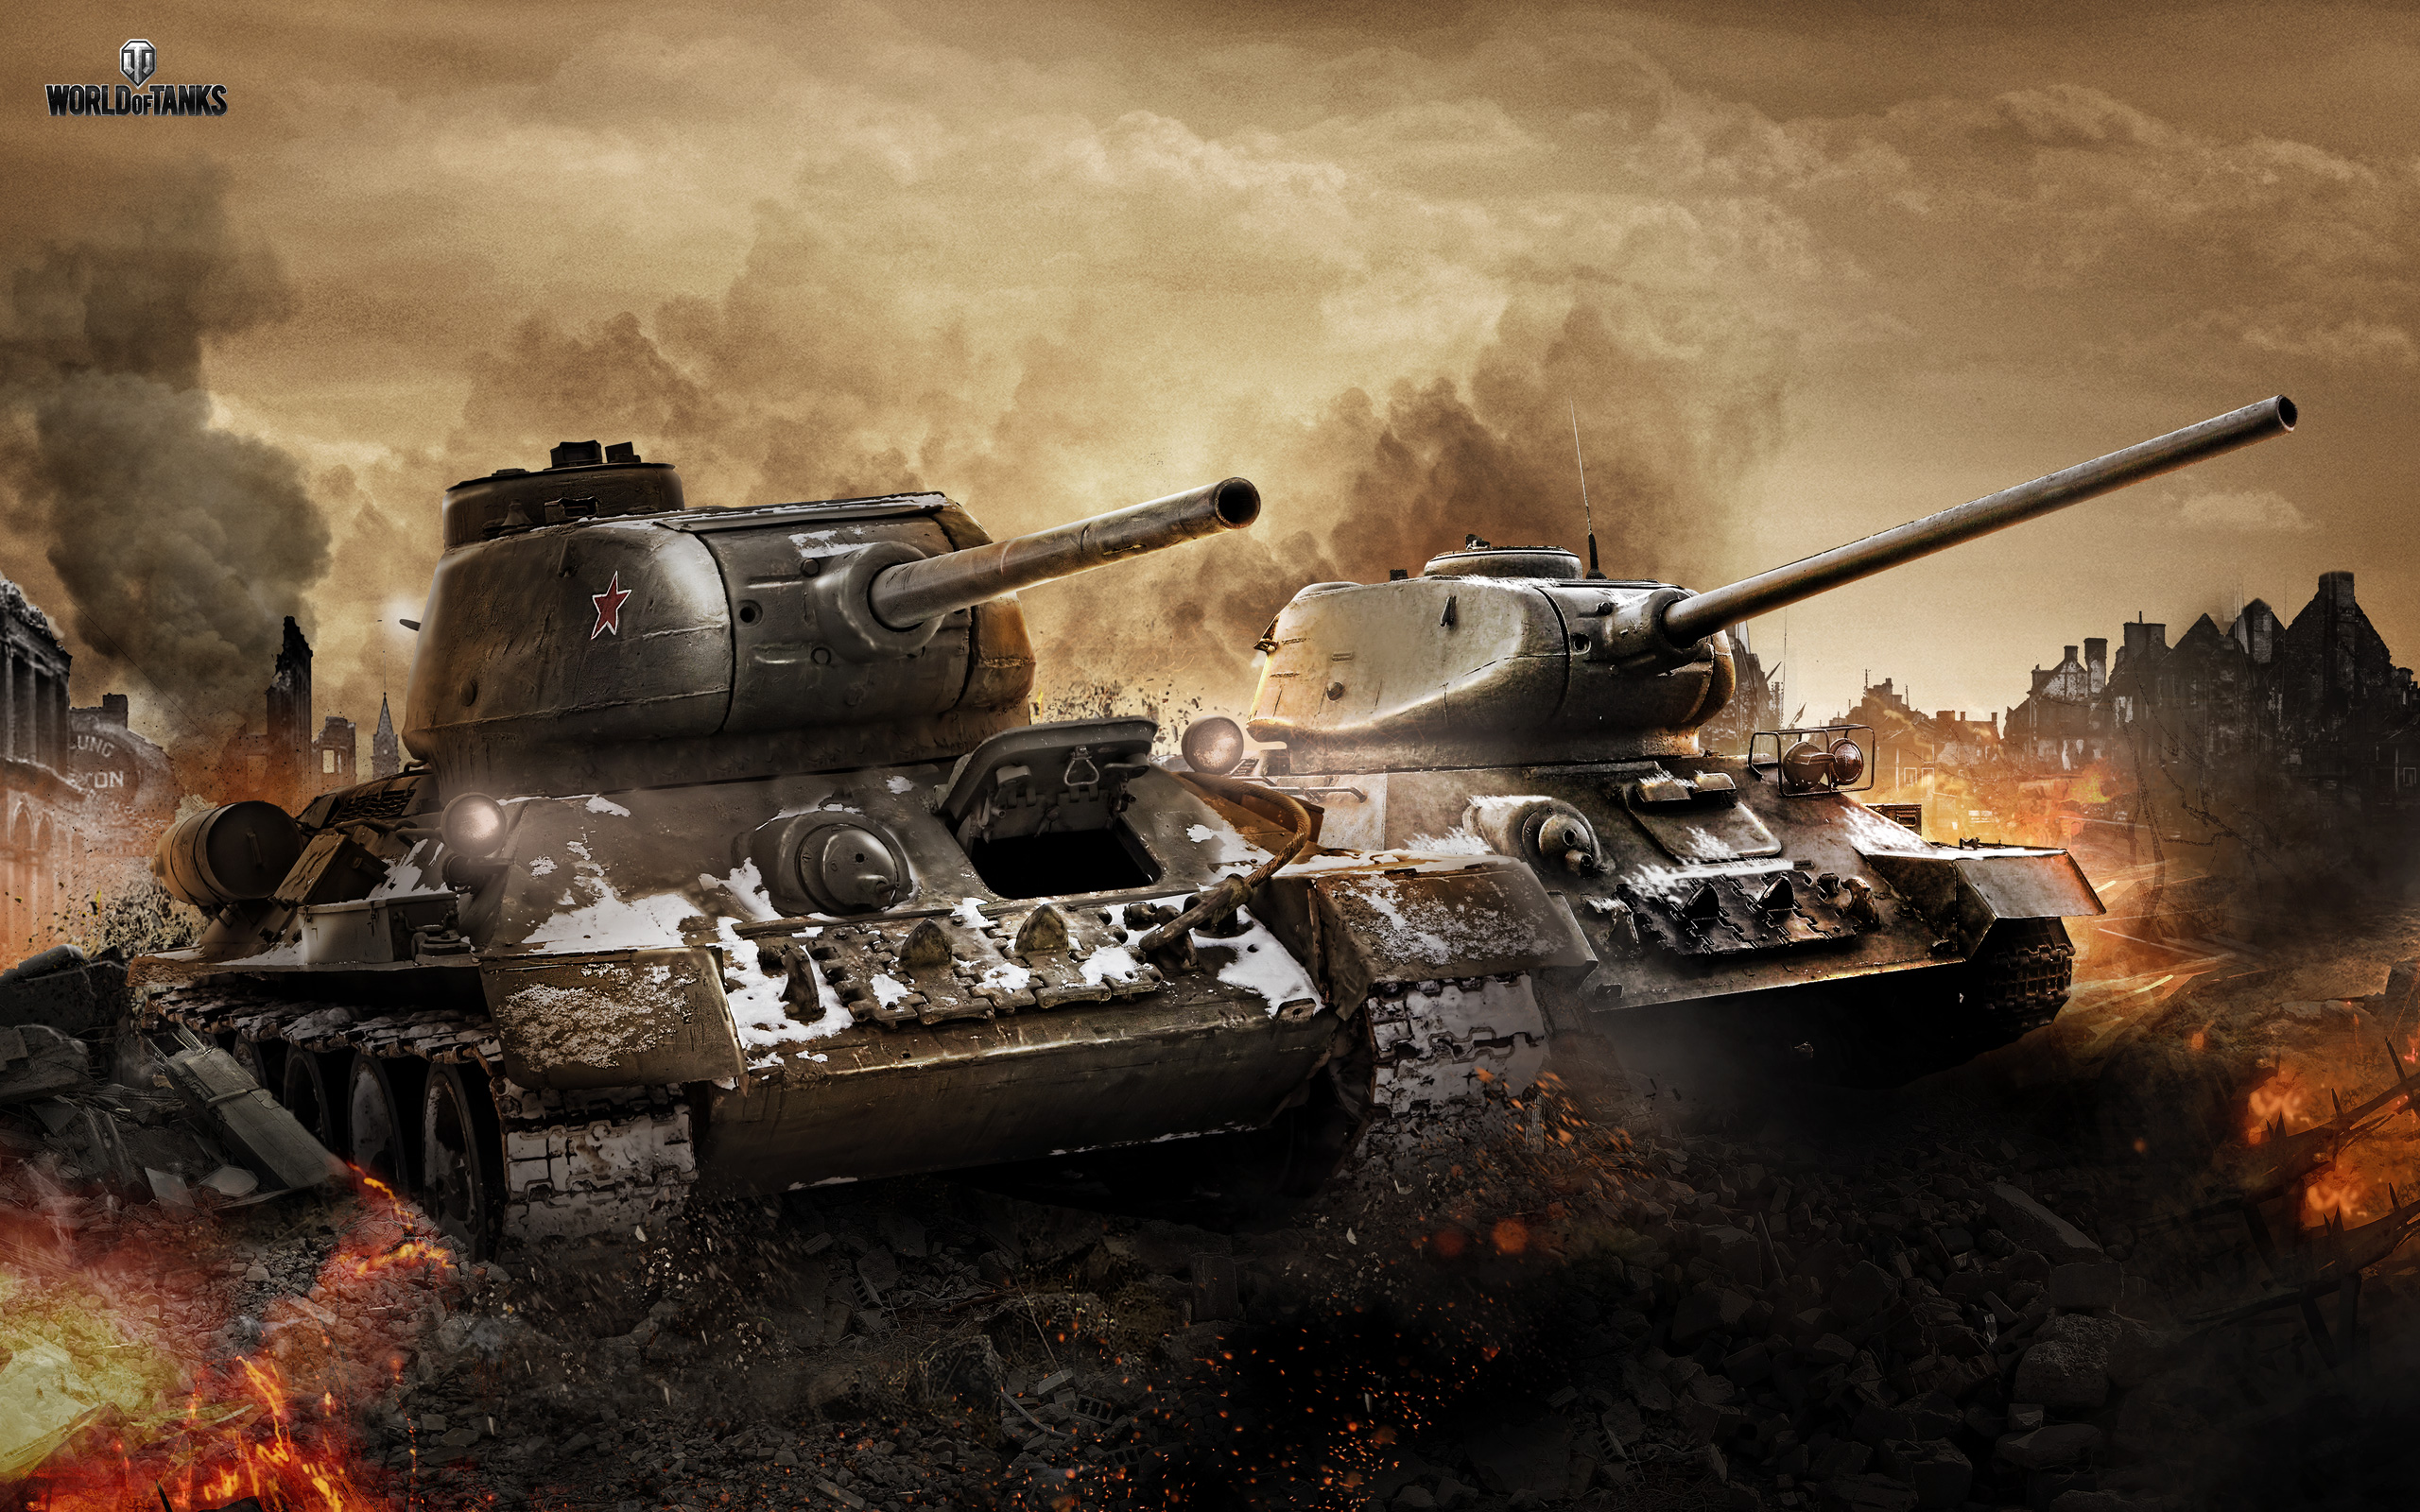 T 34 & T 34 85 in World of Tanks 2023.22 Kb